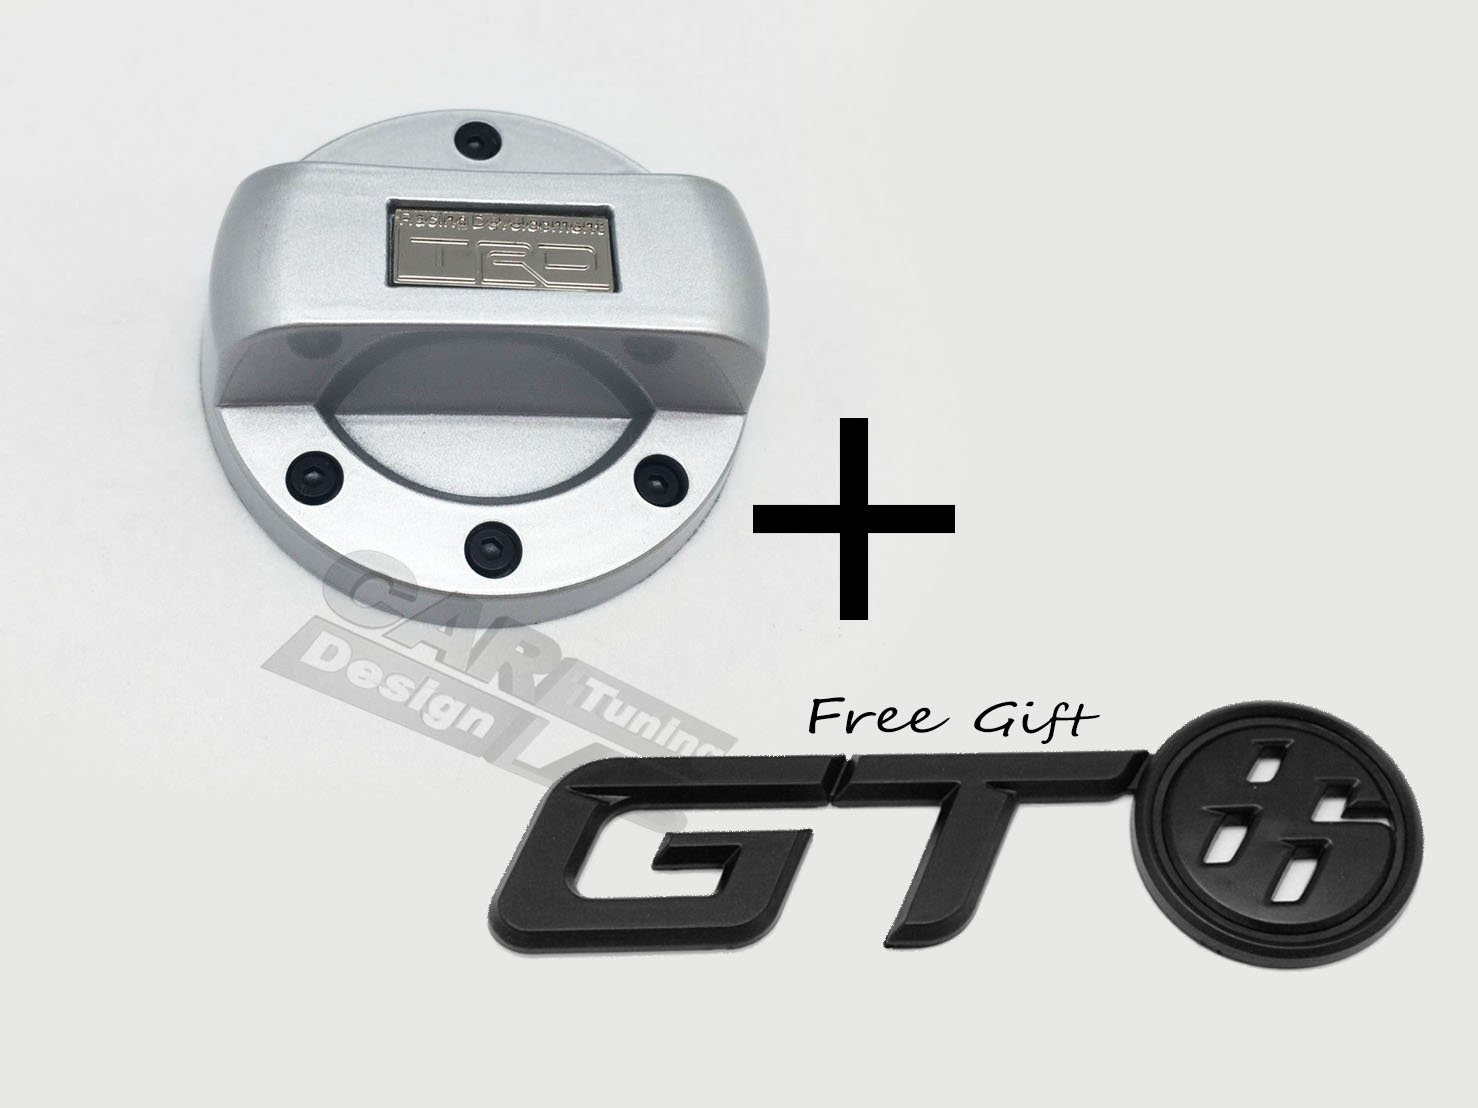 (2) JDM TRD Gas Fuel Cap Lid Cover Overlay + Gift GT86 Emblem For SCION FRS FR-S SUBARU BRZ Toyota GT86 CAR LAB